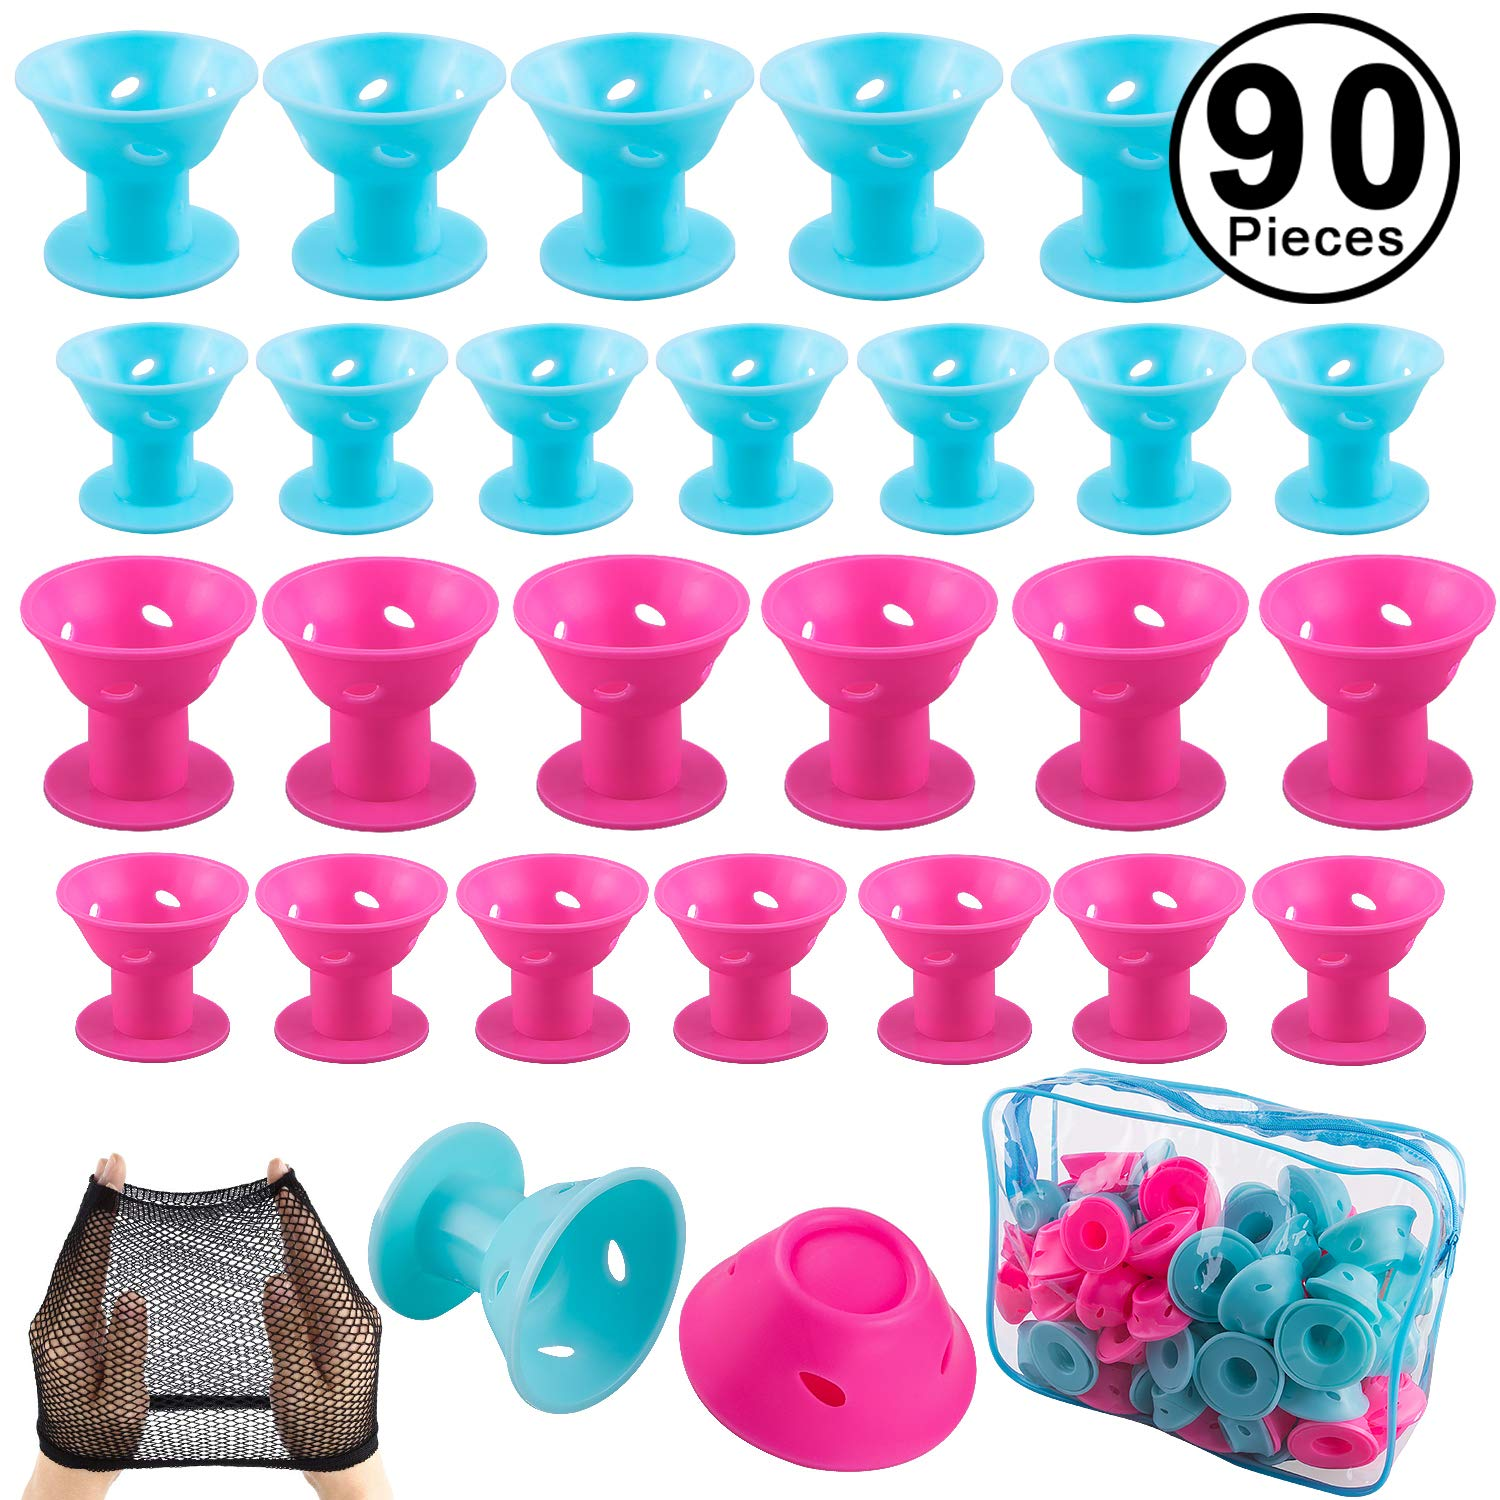 SIQUK 90 Pcs Hair Rollers Silicone Blue and Pink Hair Curlers Set Icluding 44 Pcs Large Hair Rollers and 44 Pcs Small Magic Hair Style Tools(Bonus: 1 Pc Transparent Zipper Bag,2 Pcs Black Wig Cap) by SIQUK